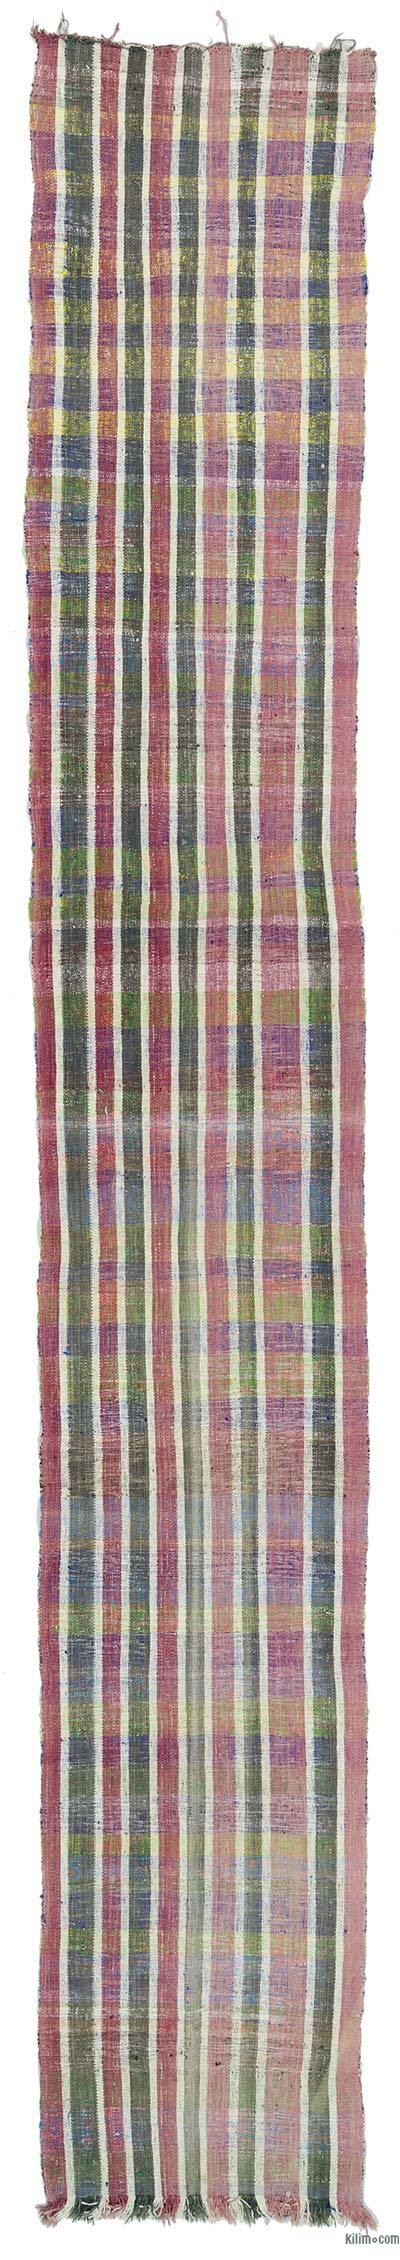 Vintage Turkish Flatweave Runner - 3'3'' x 20'7'' (39 in. x 247 in.)